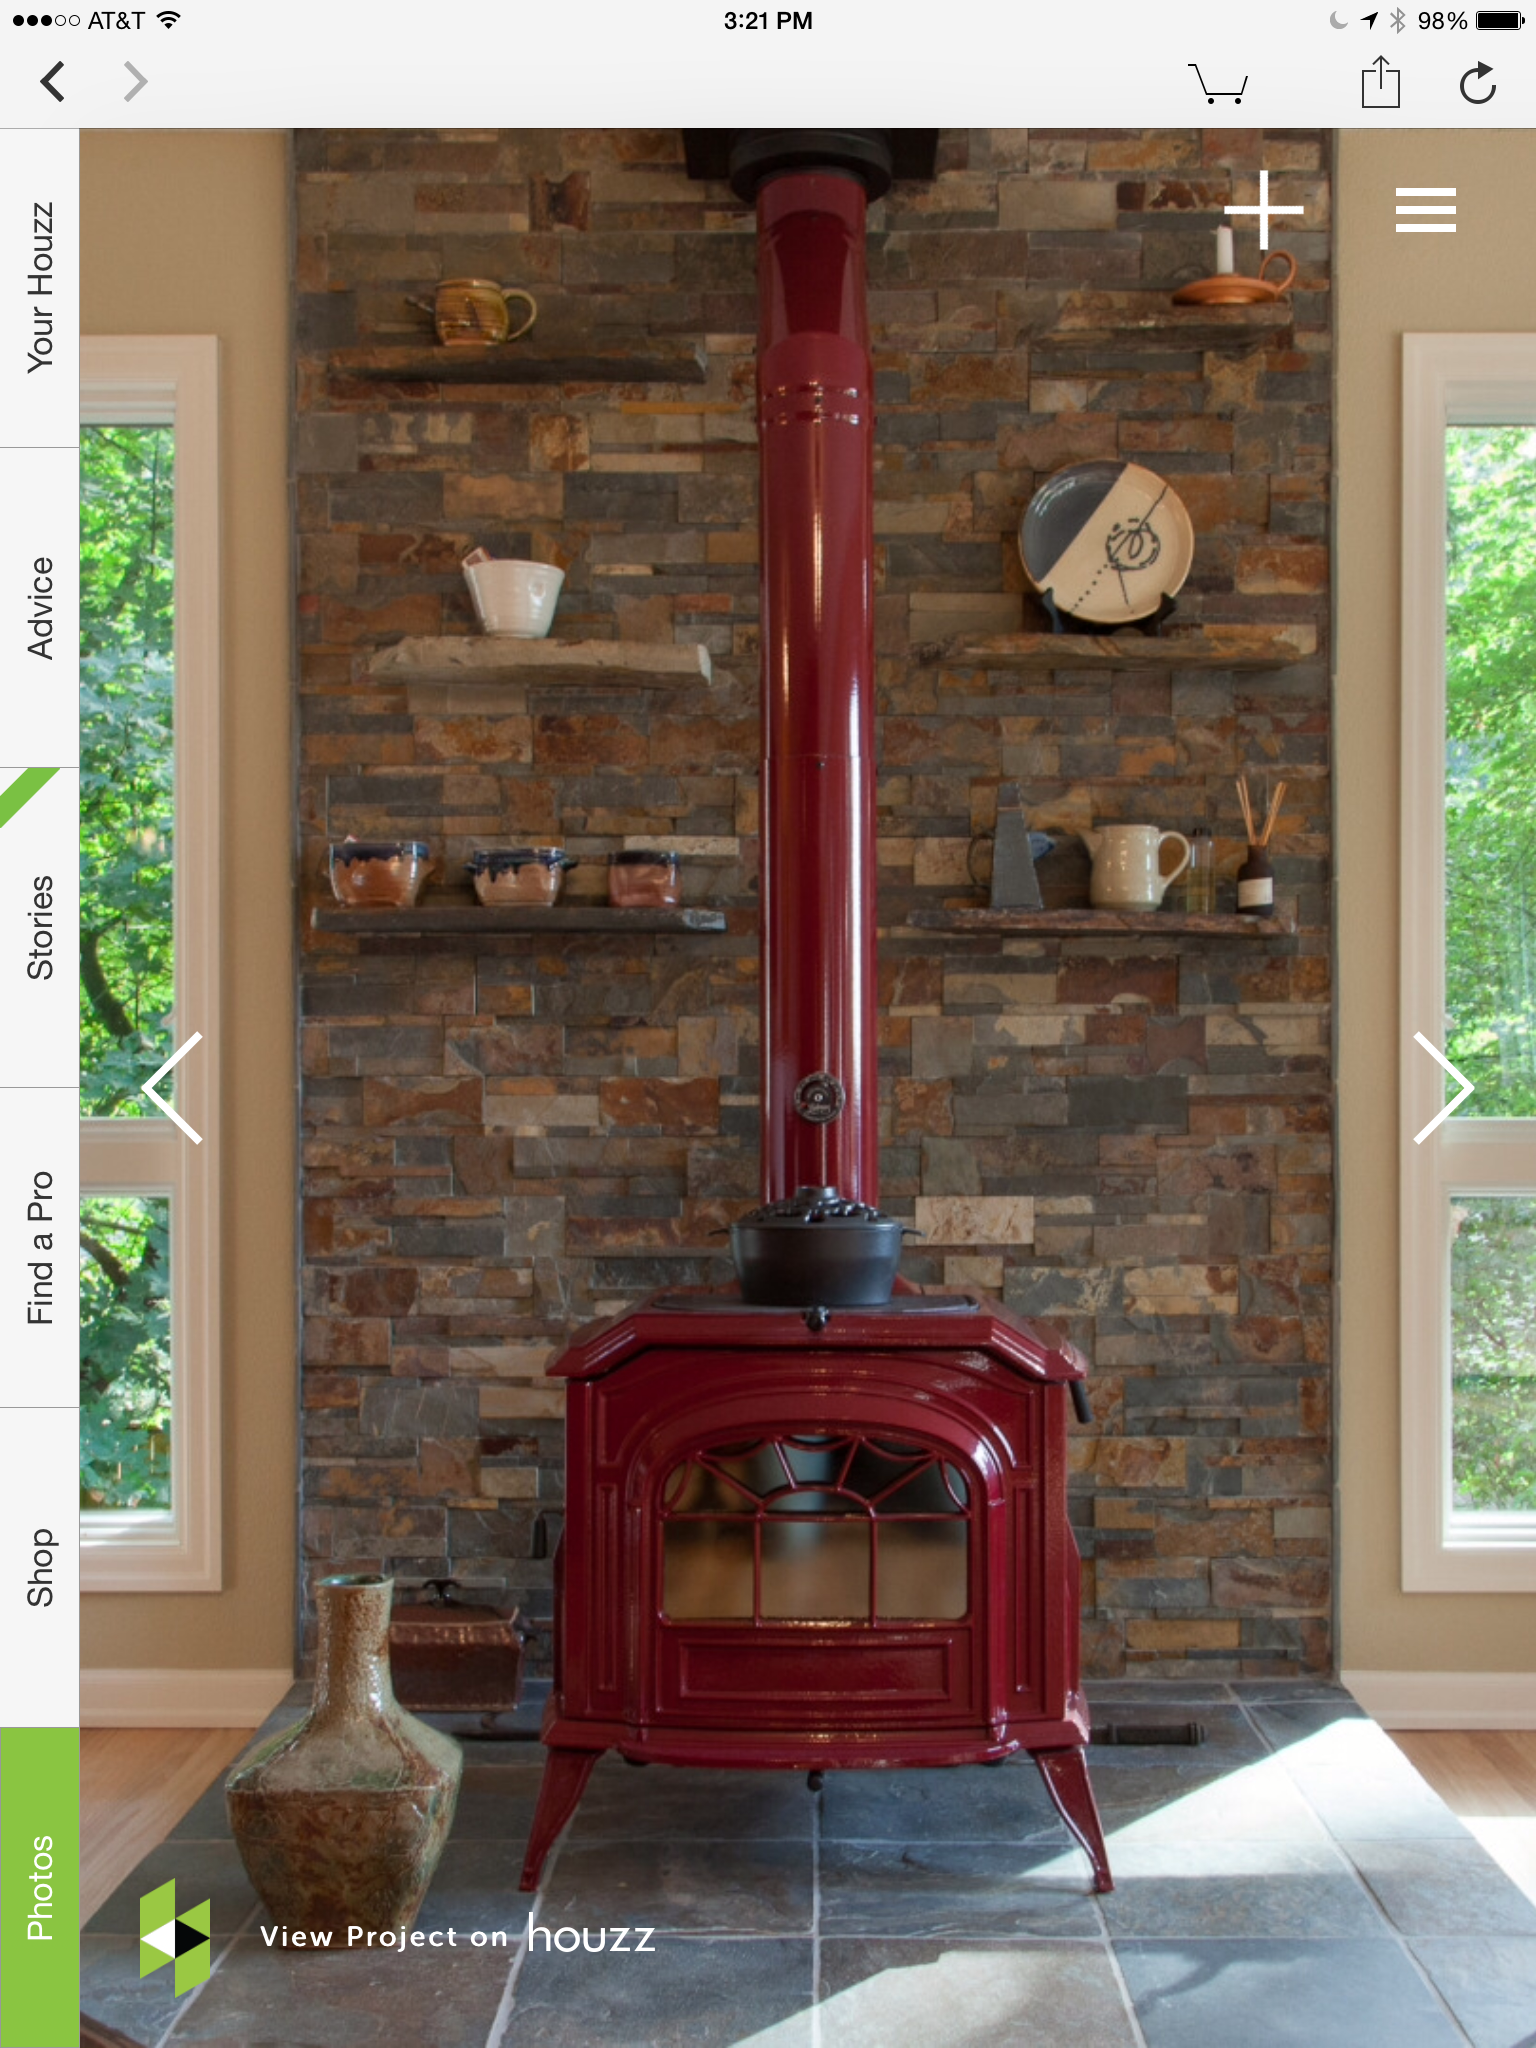 Wood Stove Living Room Design: Pin By Ashleigh Minaker On DIY Projects